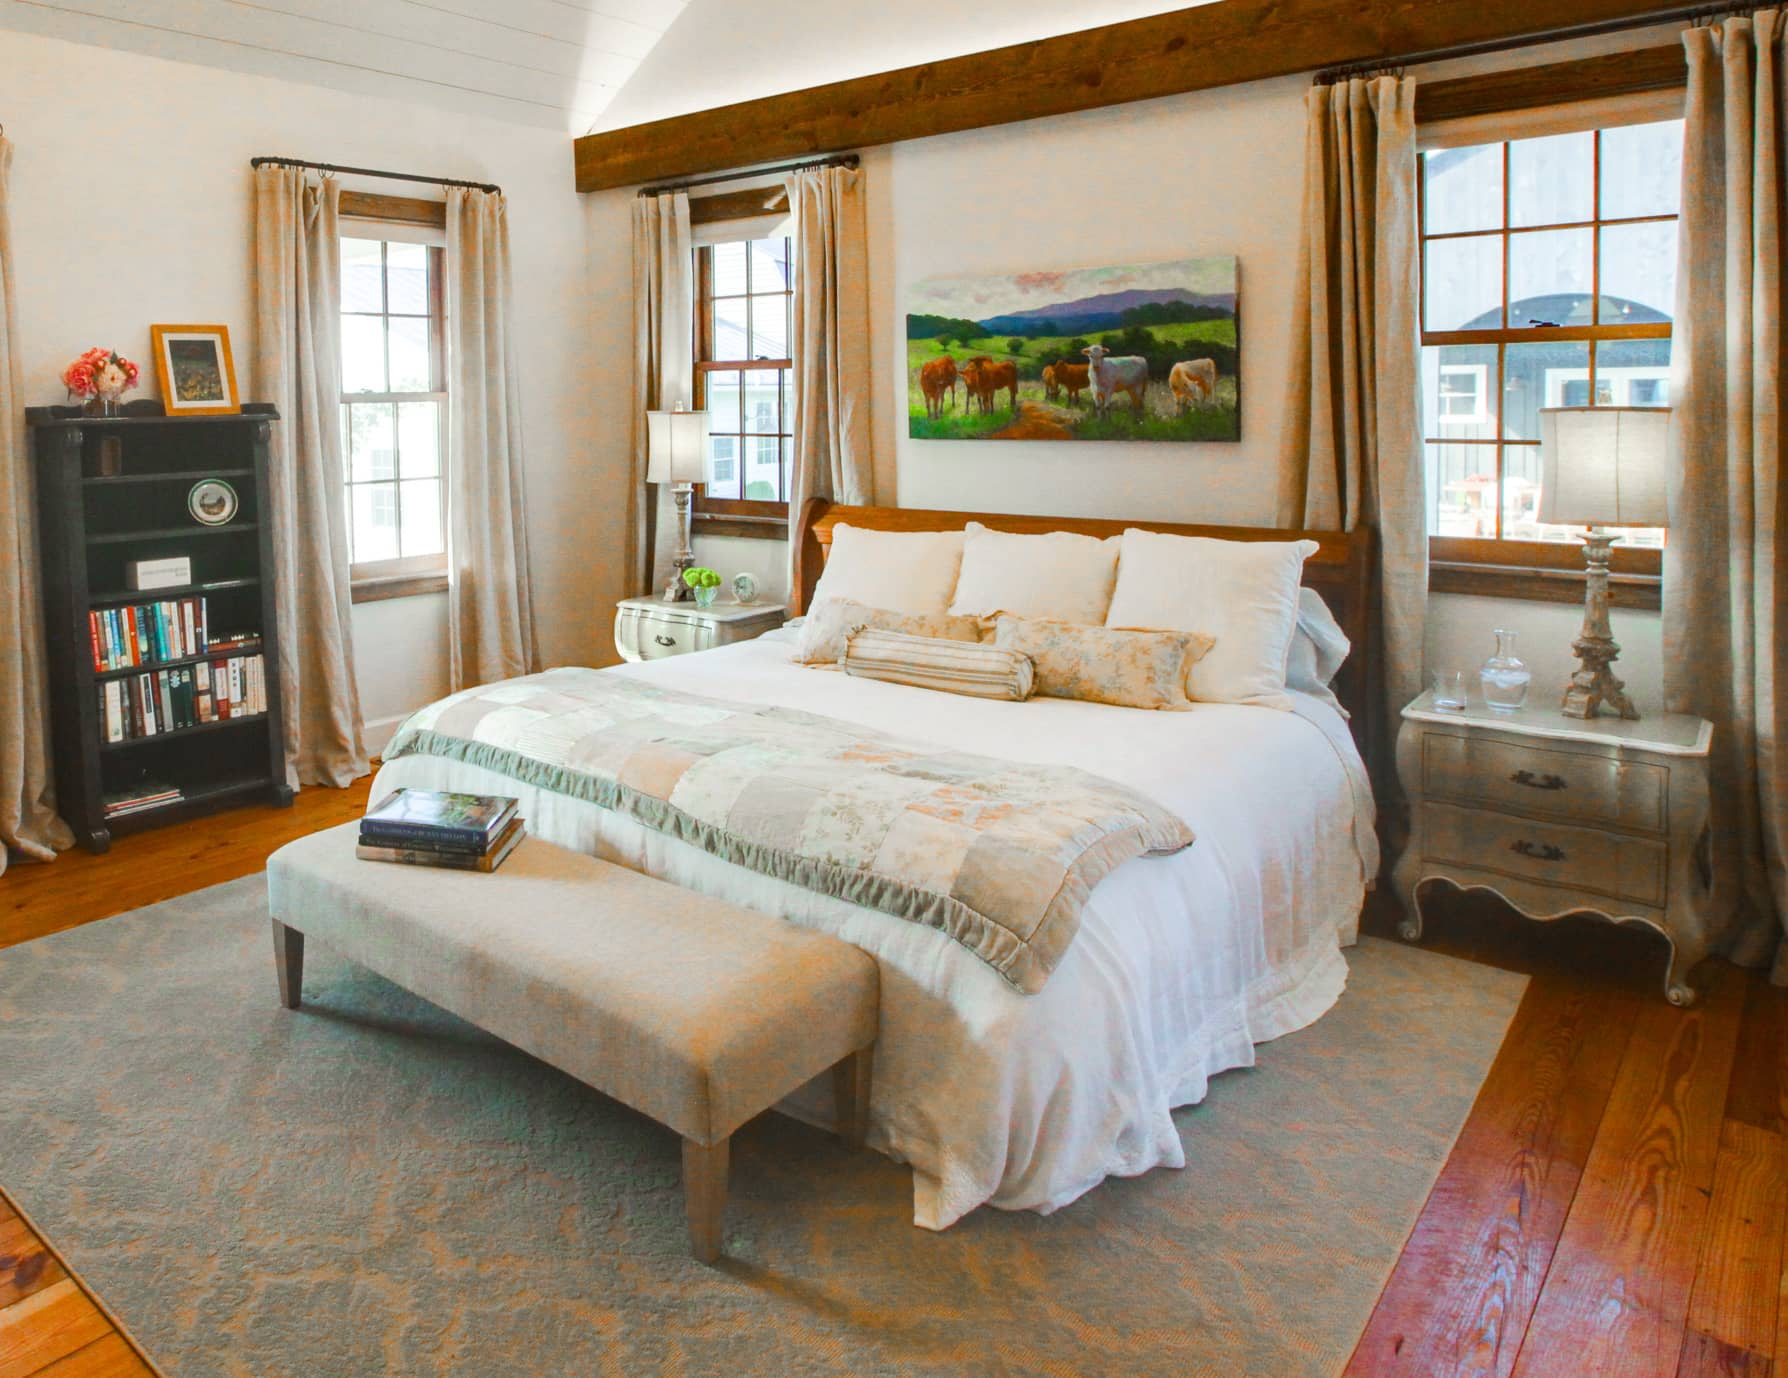 King bed in a spacious room with high ceilings at a Lexington, Virginia Inn